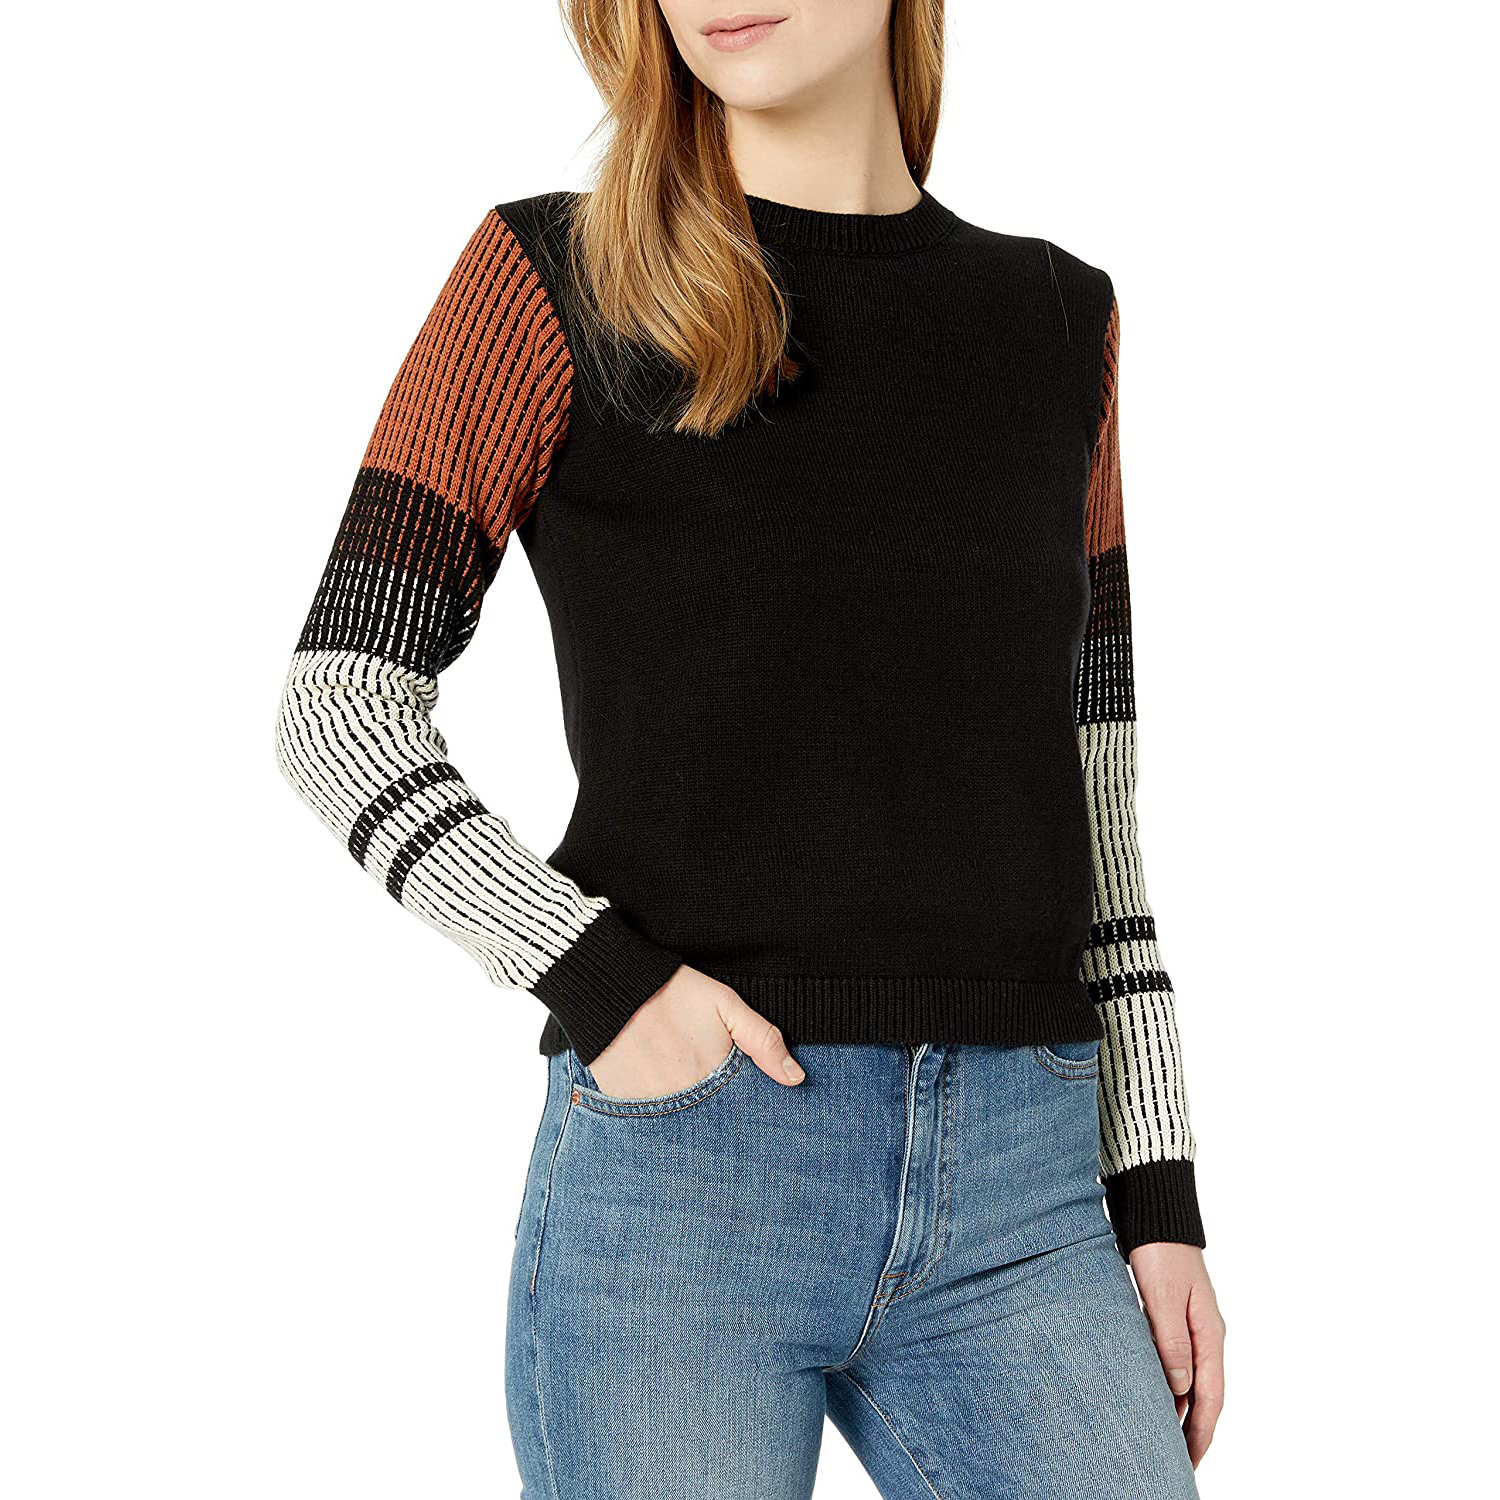 Women's Contrast Sleeve Cotton Sweater amazon cable stitch sweaters deals